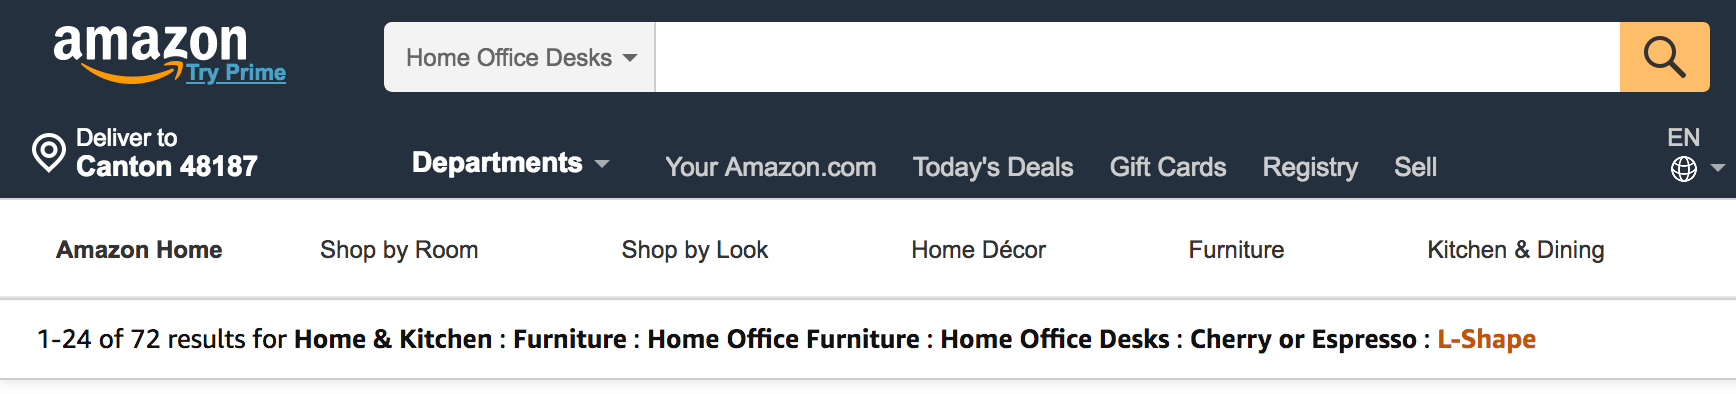 Amazon breadcrumb navigation showing progression from Home & Kitchen > Furniture > Home Office Furniture > Home Office Desks > Cherry or Espresso > L-shape